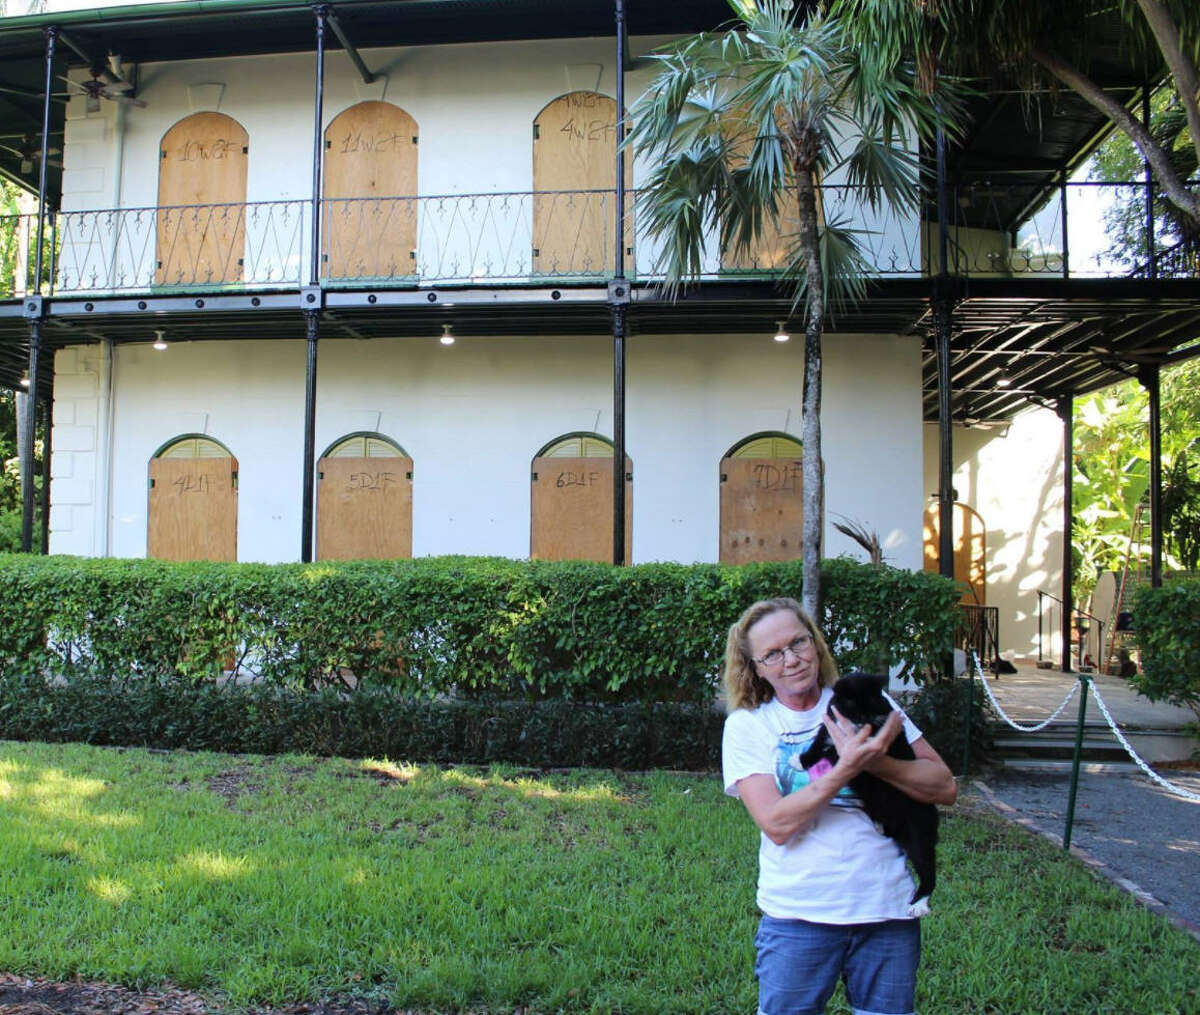 The Hemingway Home Museum in Key West is prepared for Hurricane Irma on Sept. 7, 2017. Executive director Dave Gonzalez said the 54 cats will be cared for by 10 staff members staying behind to weather the hurricane. The cats will have access to shelter during the storm.